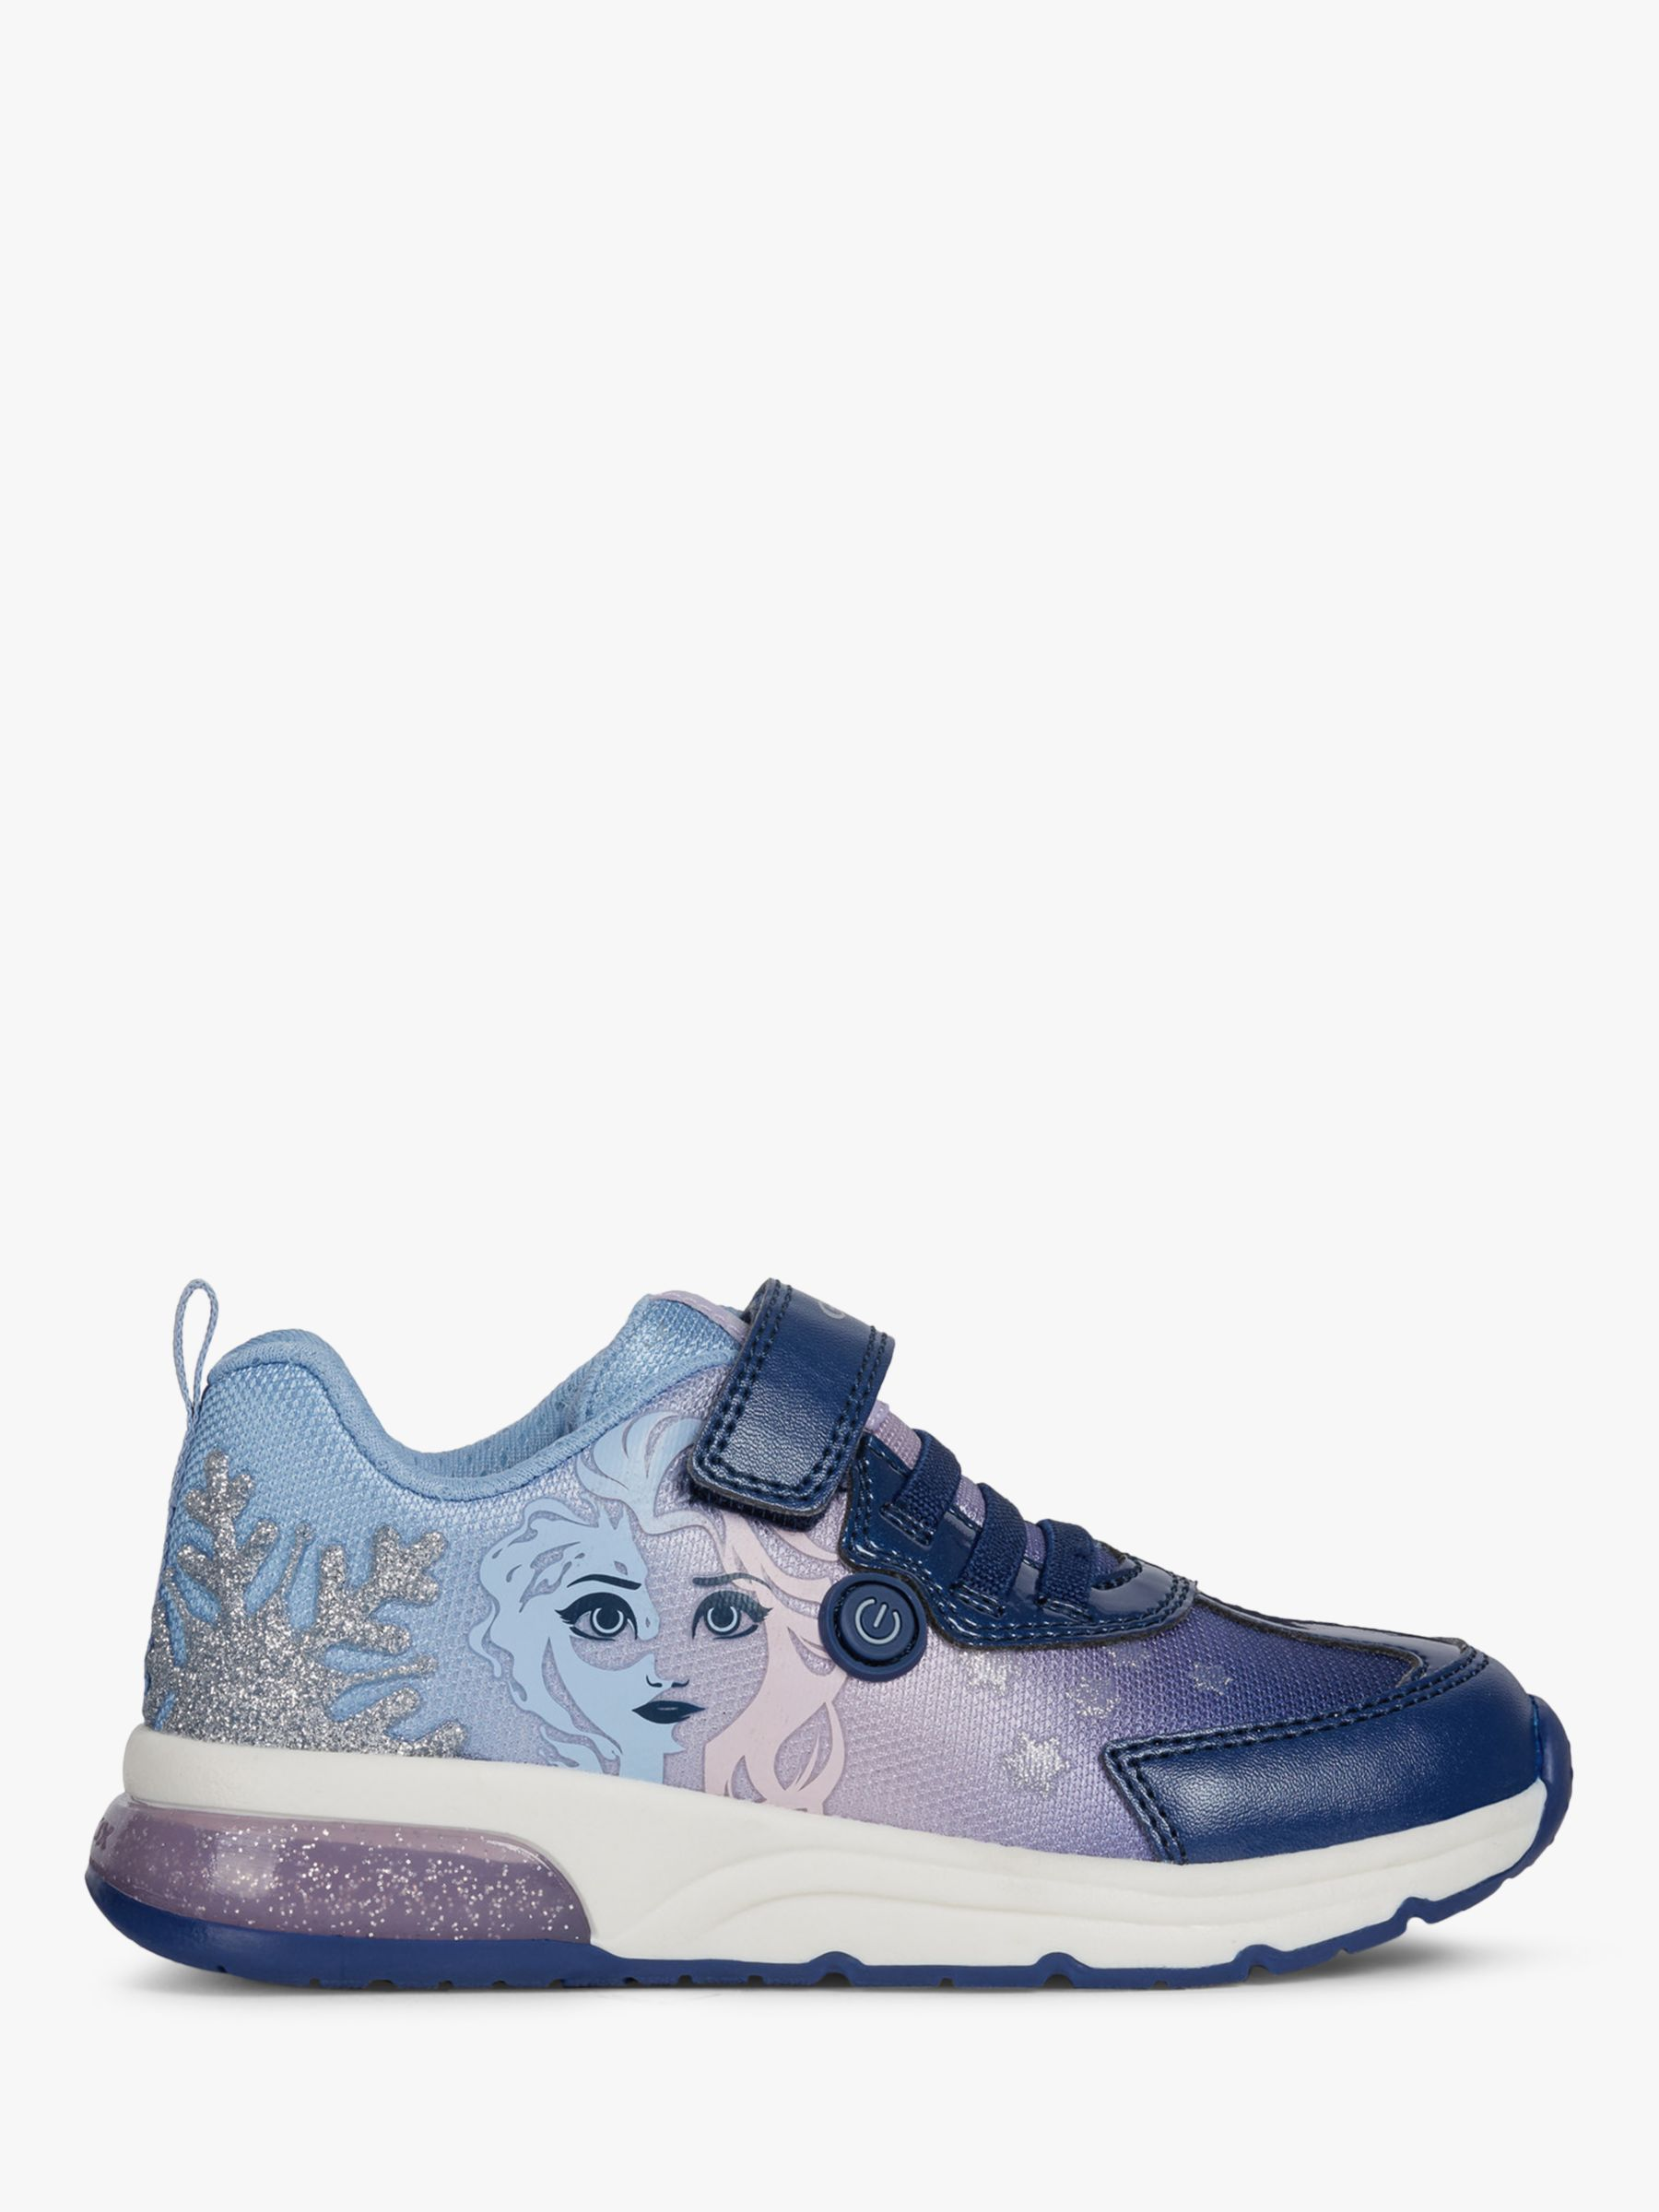 Geox Geox Children's Spaceclub Frozen Riptape Trainers, Navy/Lilac